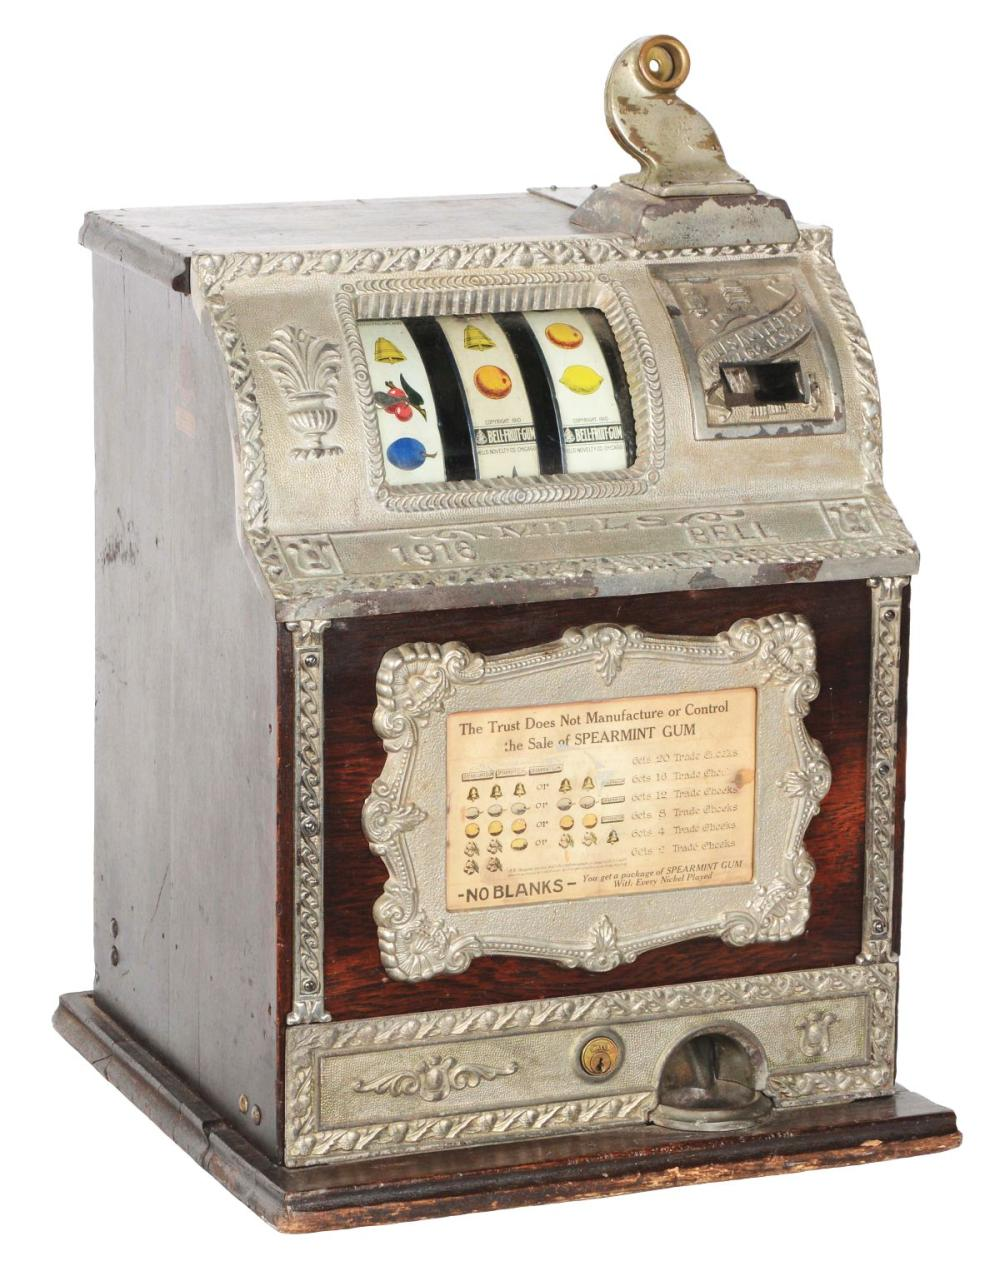 MILLS NOVELTY CO. 1916 BELL SLOT MACHINE.